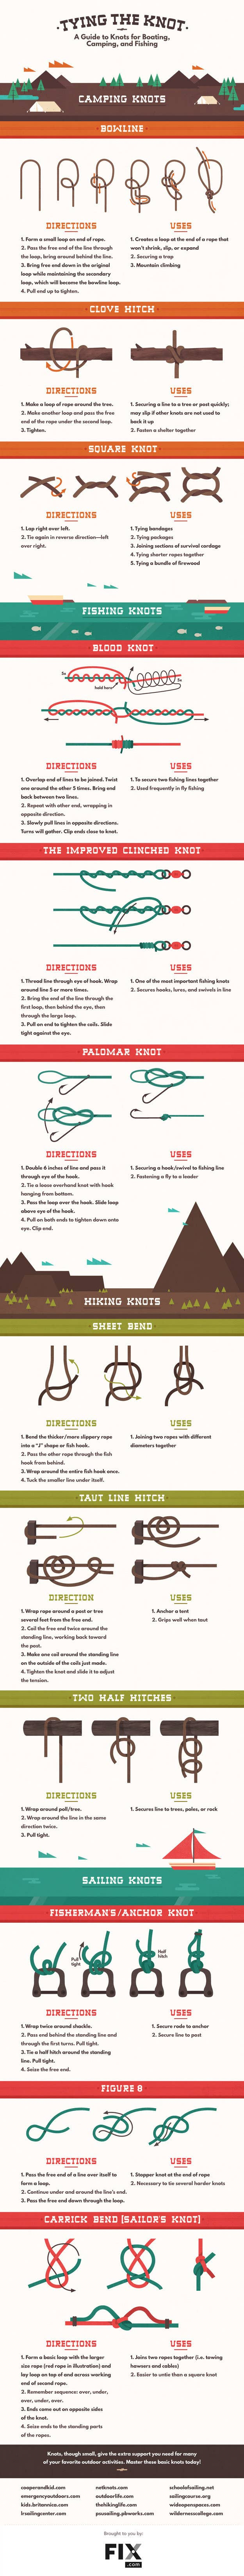 Heres How To Tie Anything And Everything Animation Bowline Knot Tying Boating One Handed Shoelace Here S Learn All The Knots You Need Know For Camping Fishing Sooo Outdoorsy